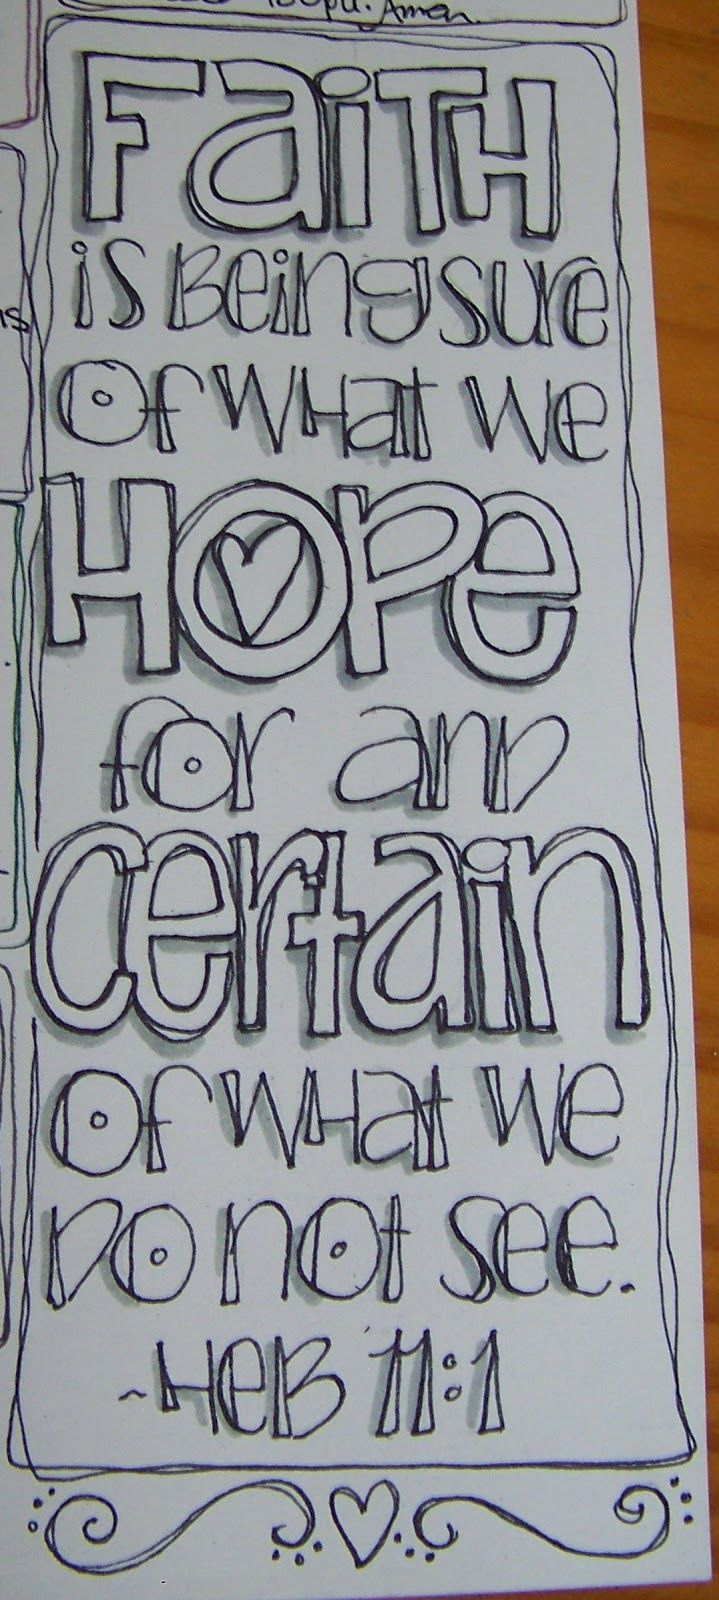 Hebrews 11:1 - Faith is being sure of what we hope for and certain of what we do not see.